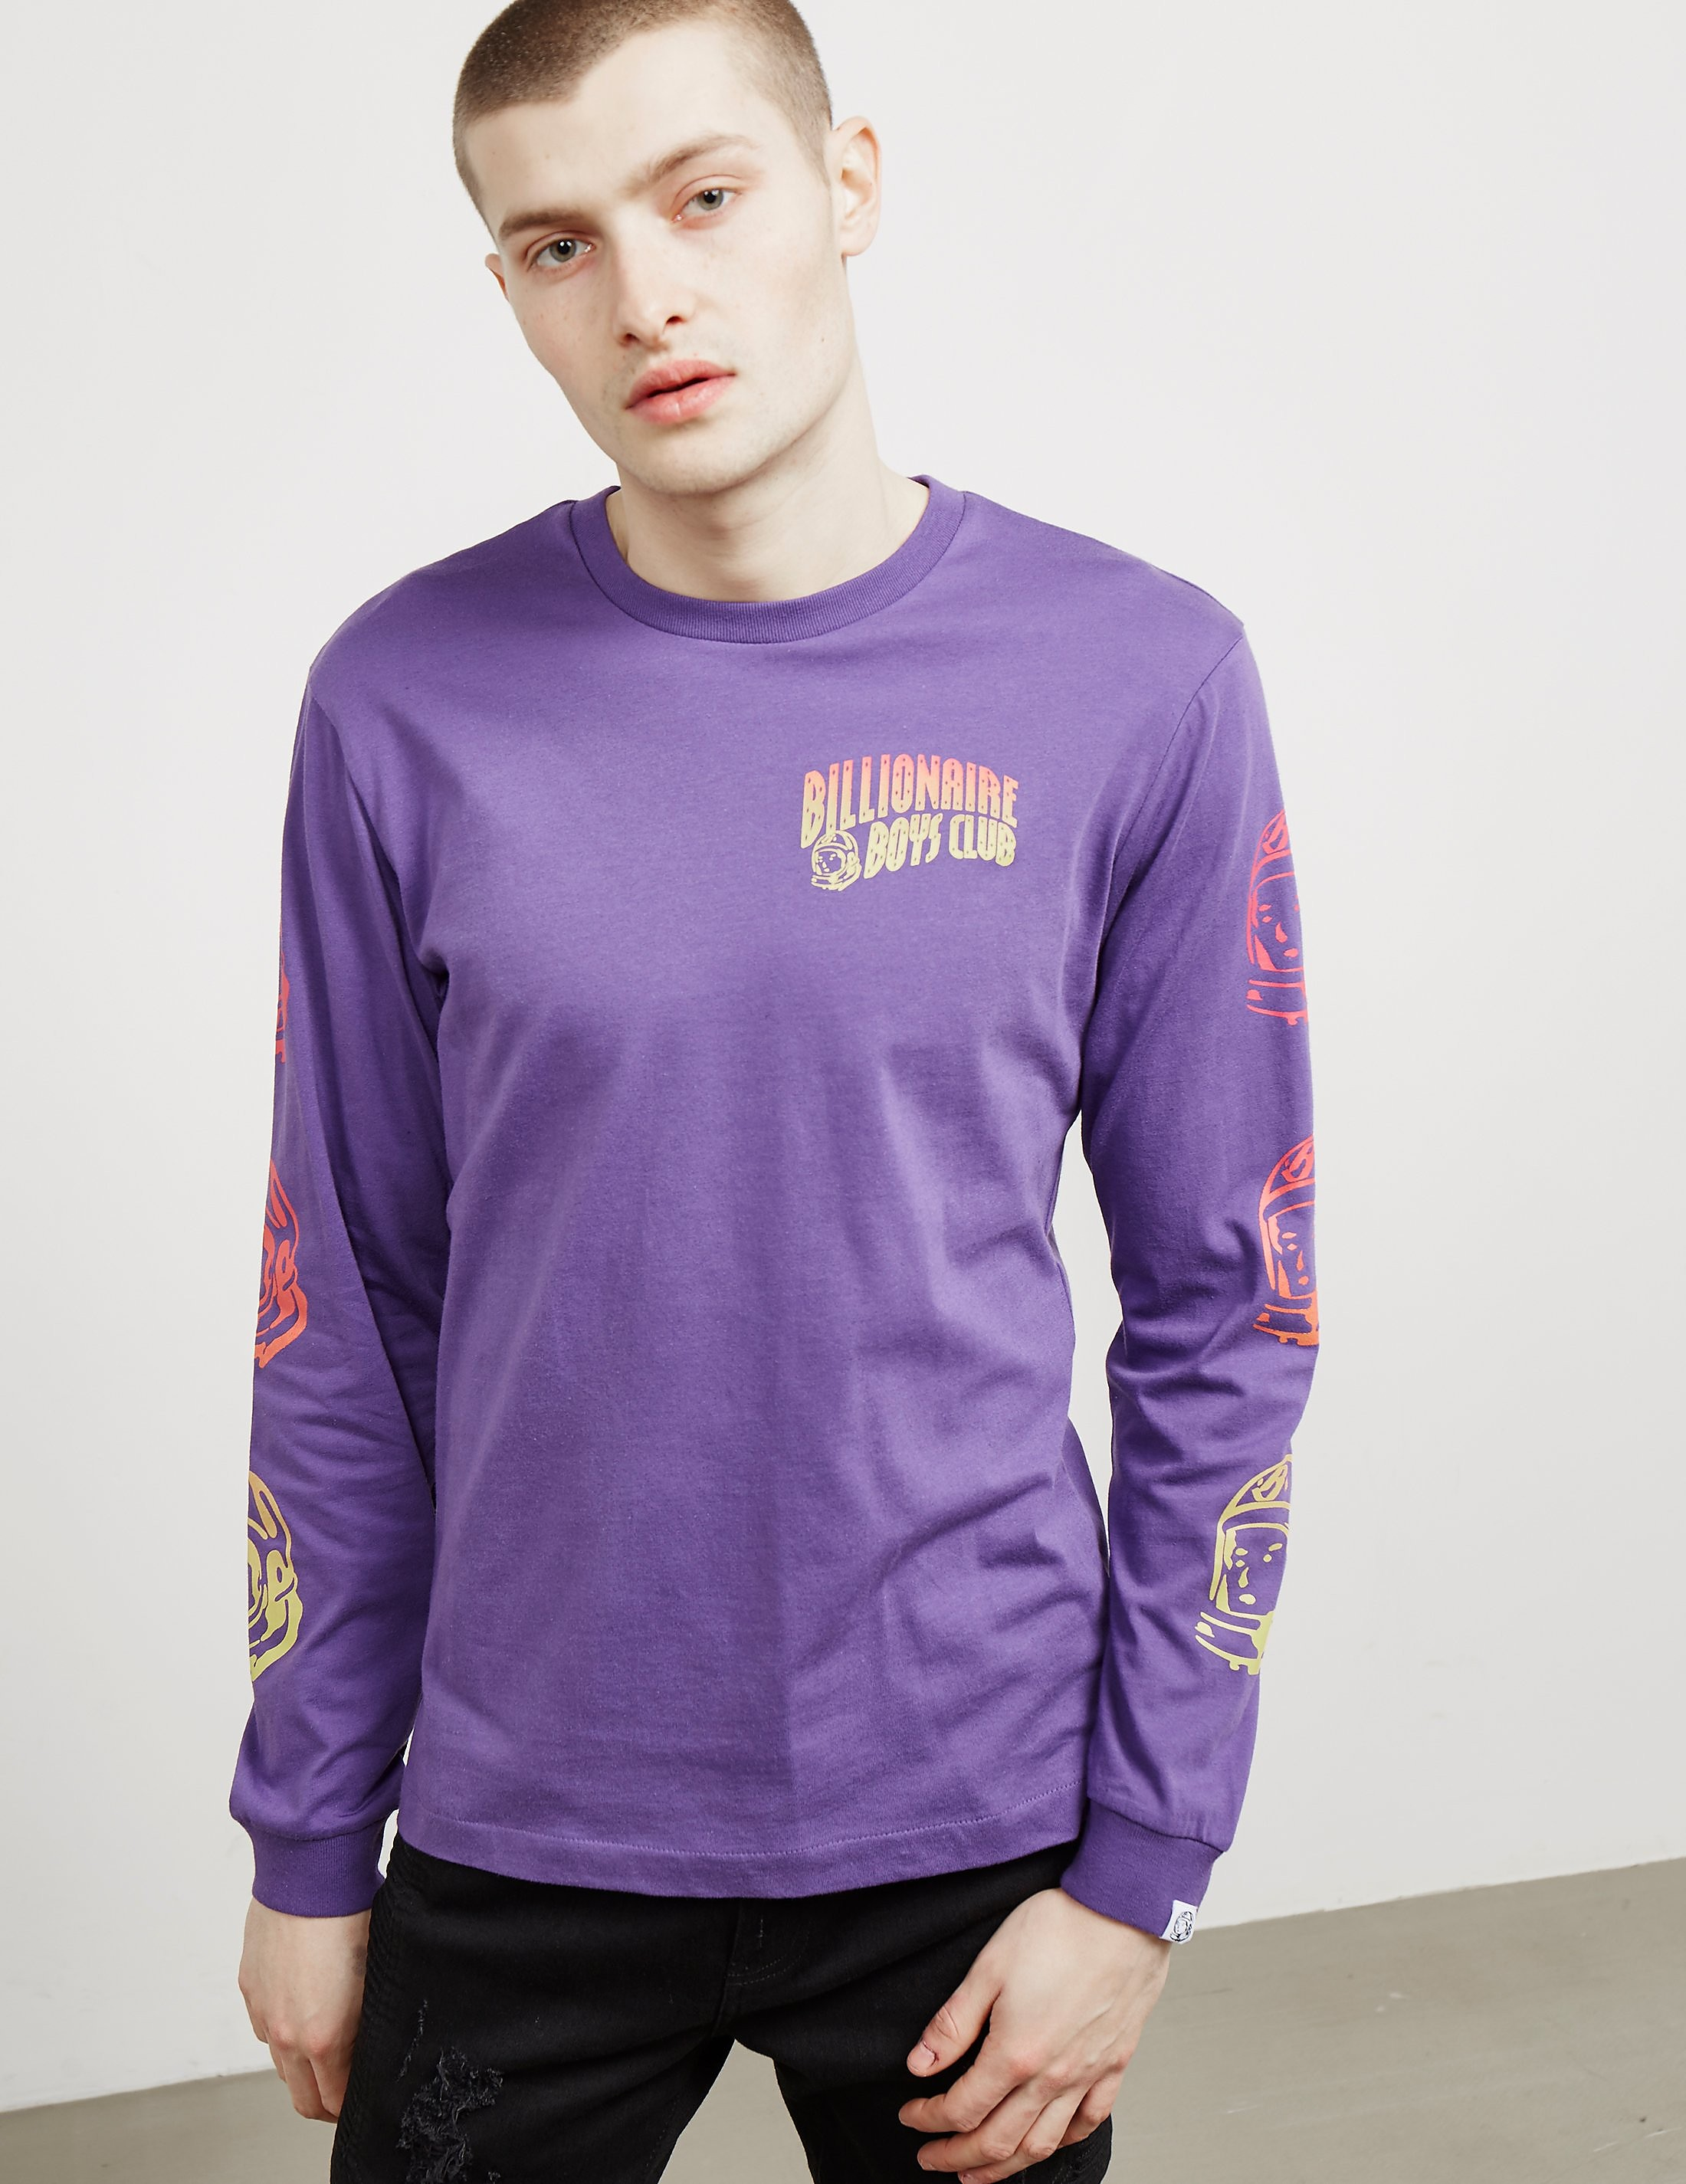 Billionaire Boys Club Helmet Long Sleeve T-Shirt